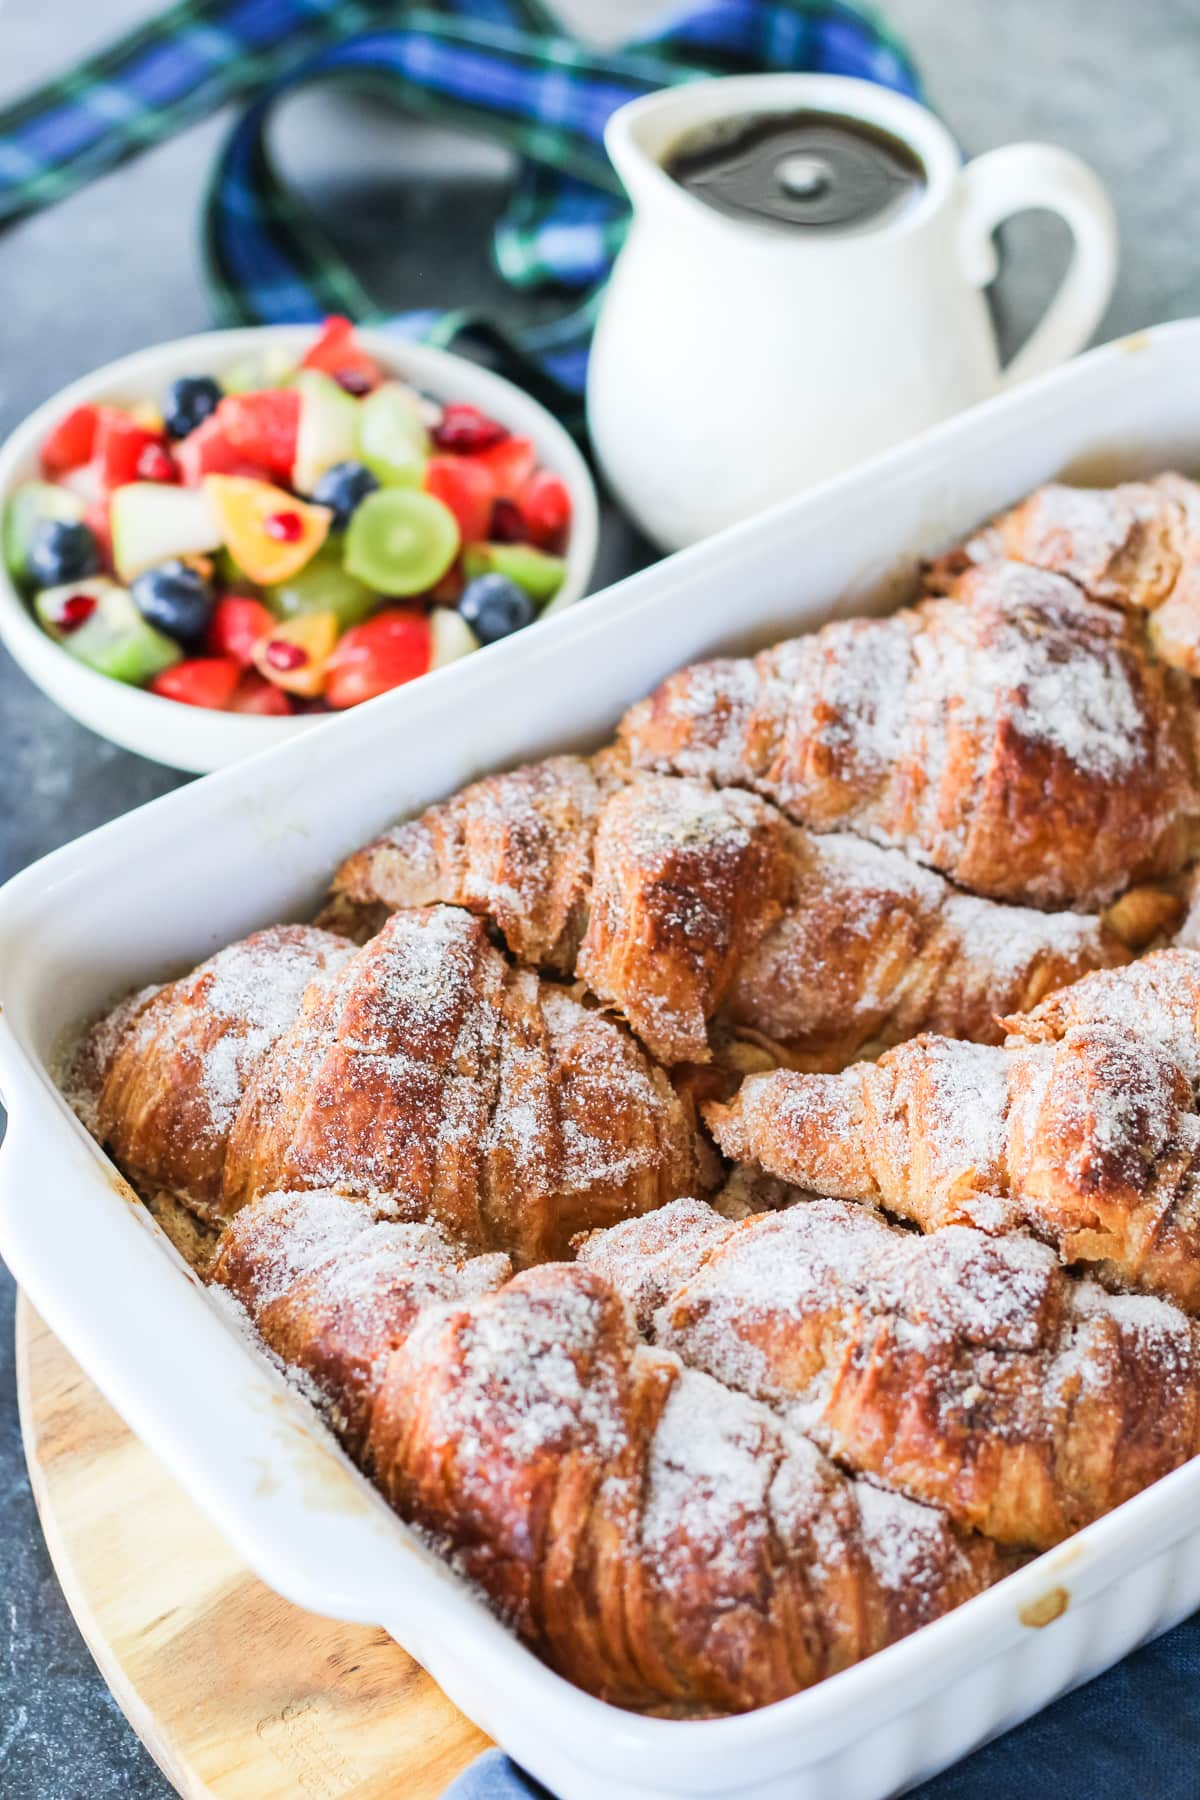 a close up view of a Croissant French Toast Bake covered in sugar. A bowl of fruit salad and syrup in the background